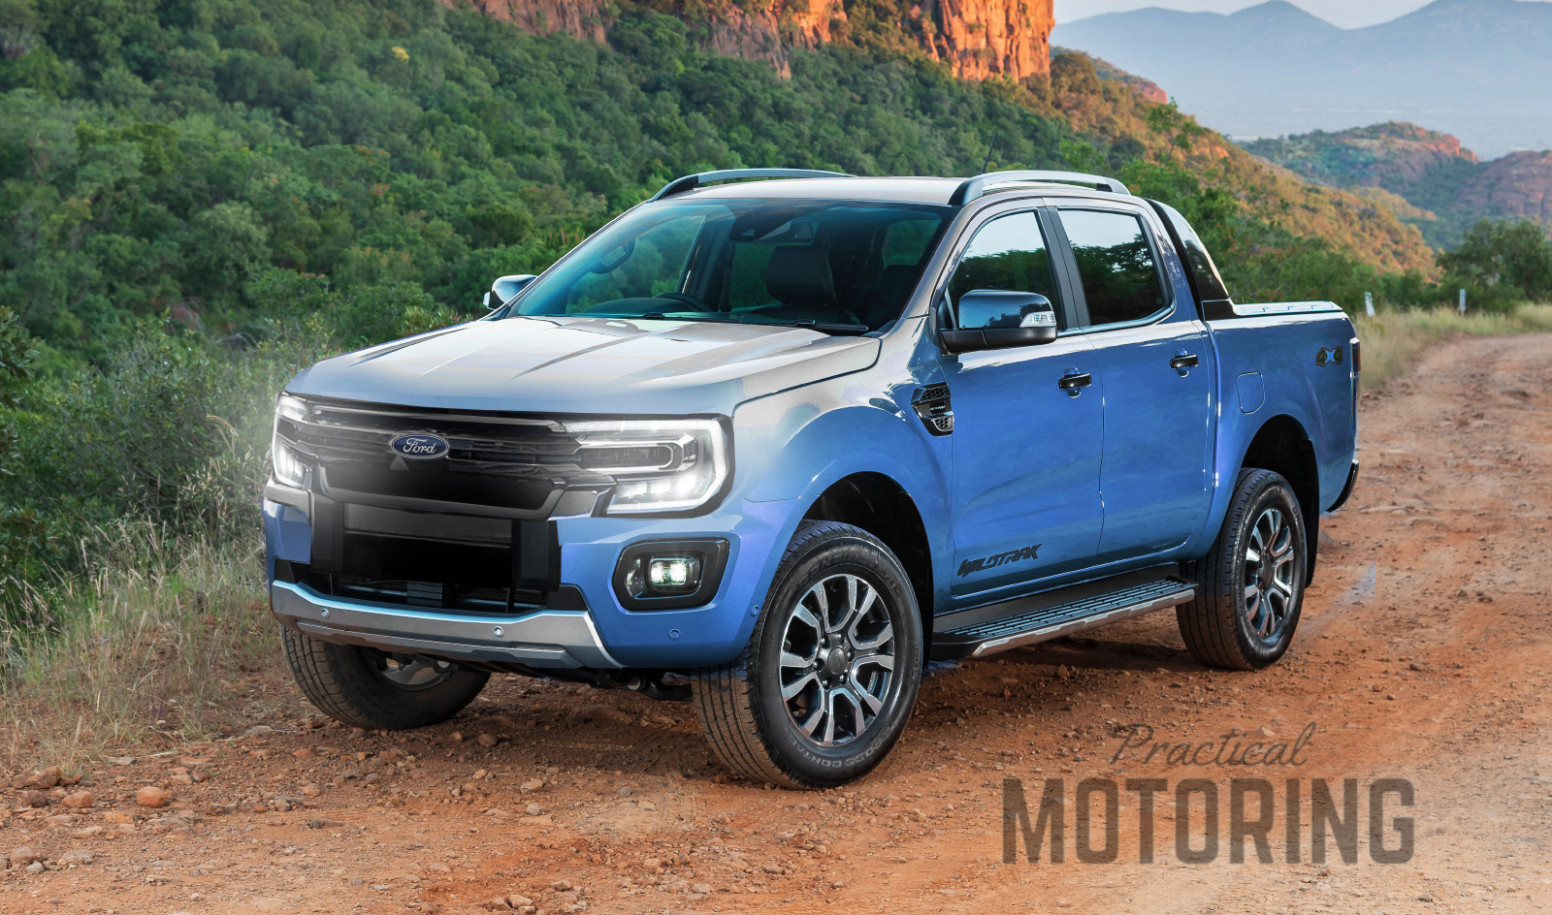 Specs 2022 Ford Everest